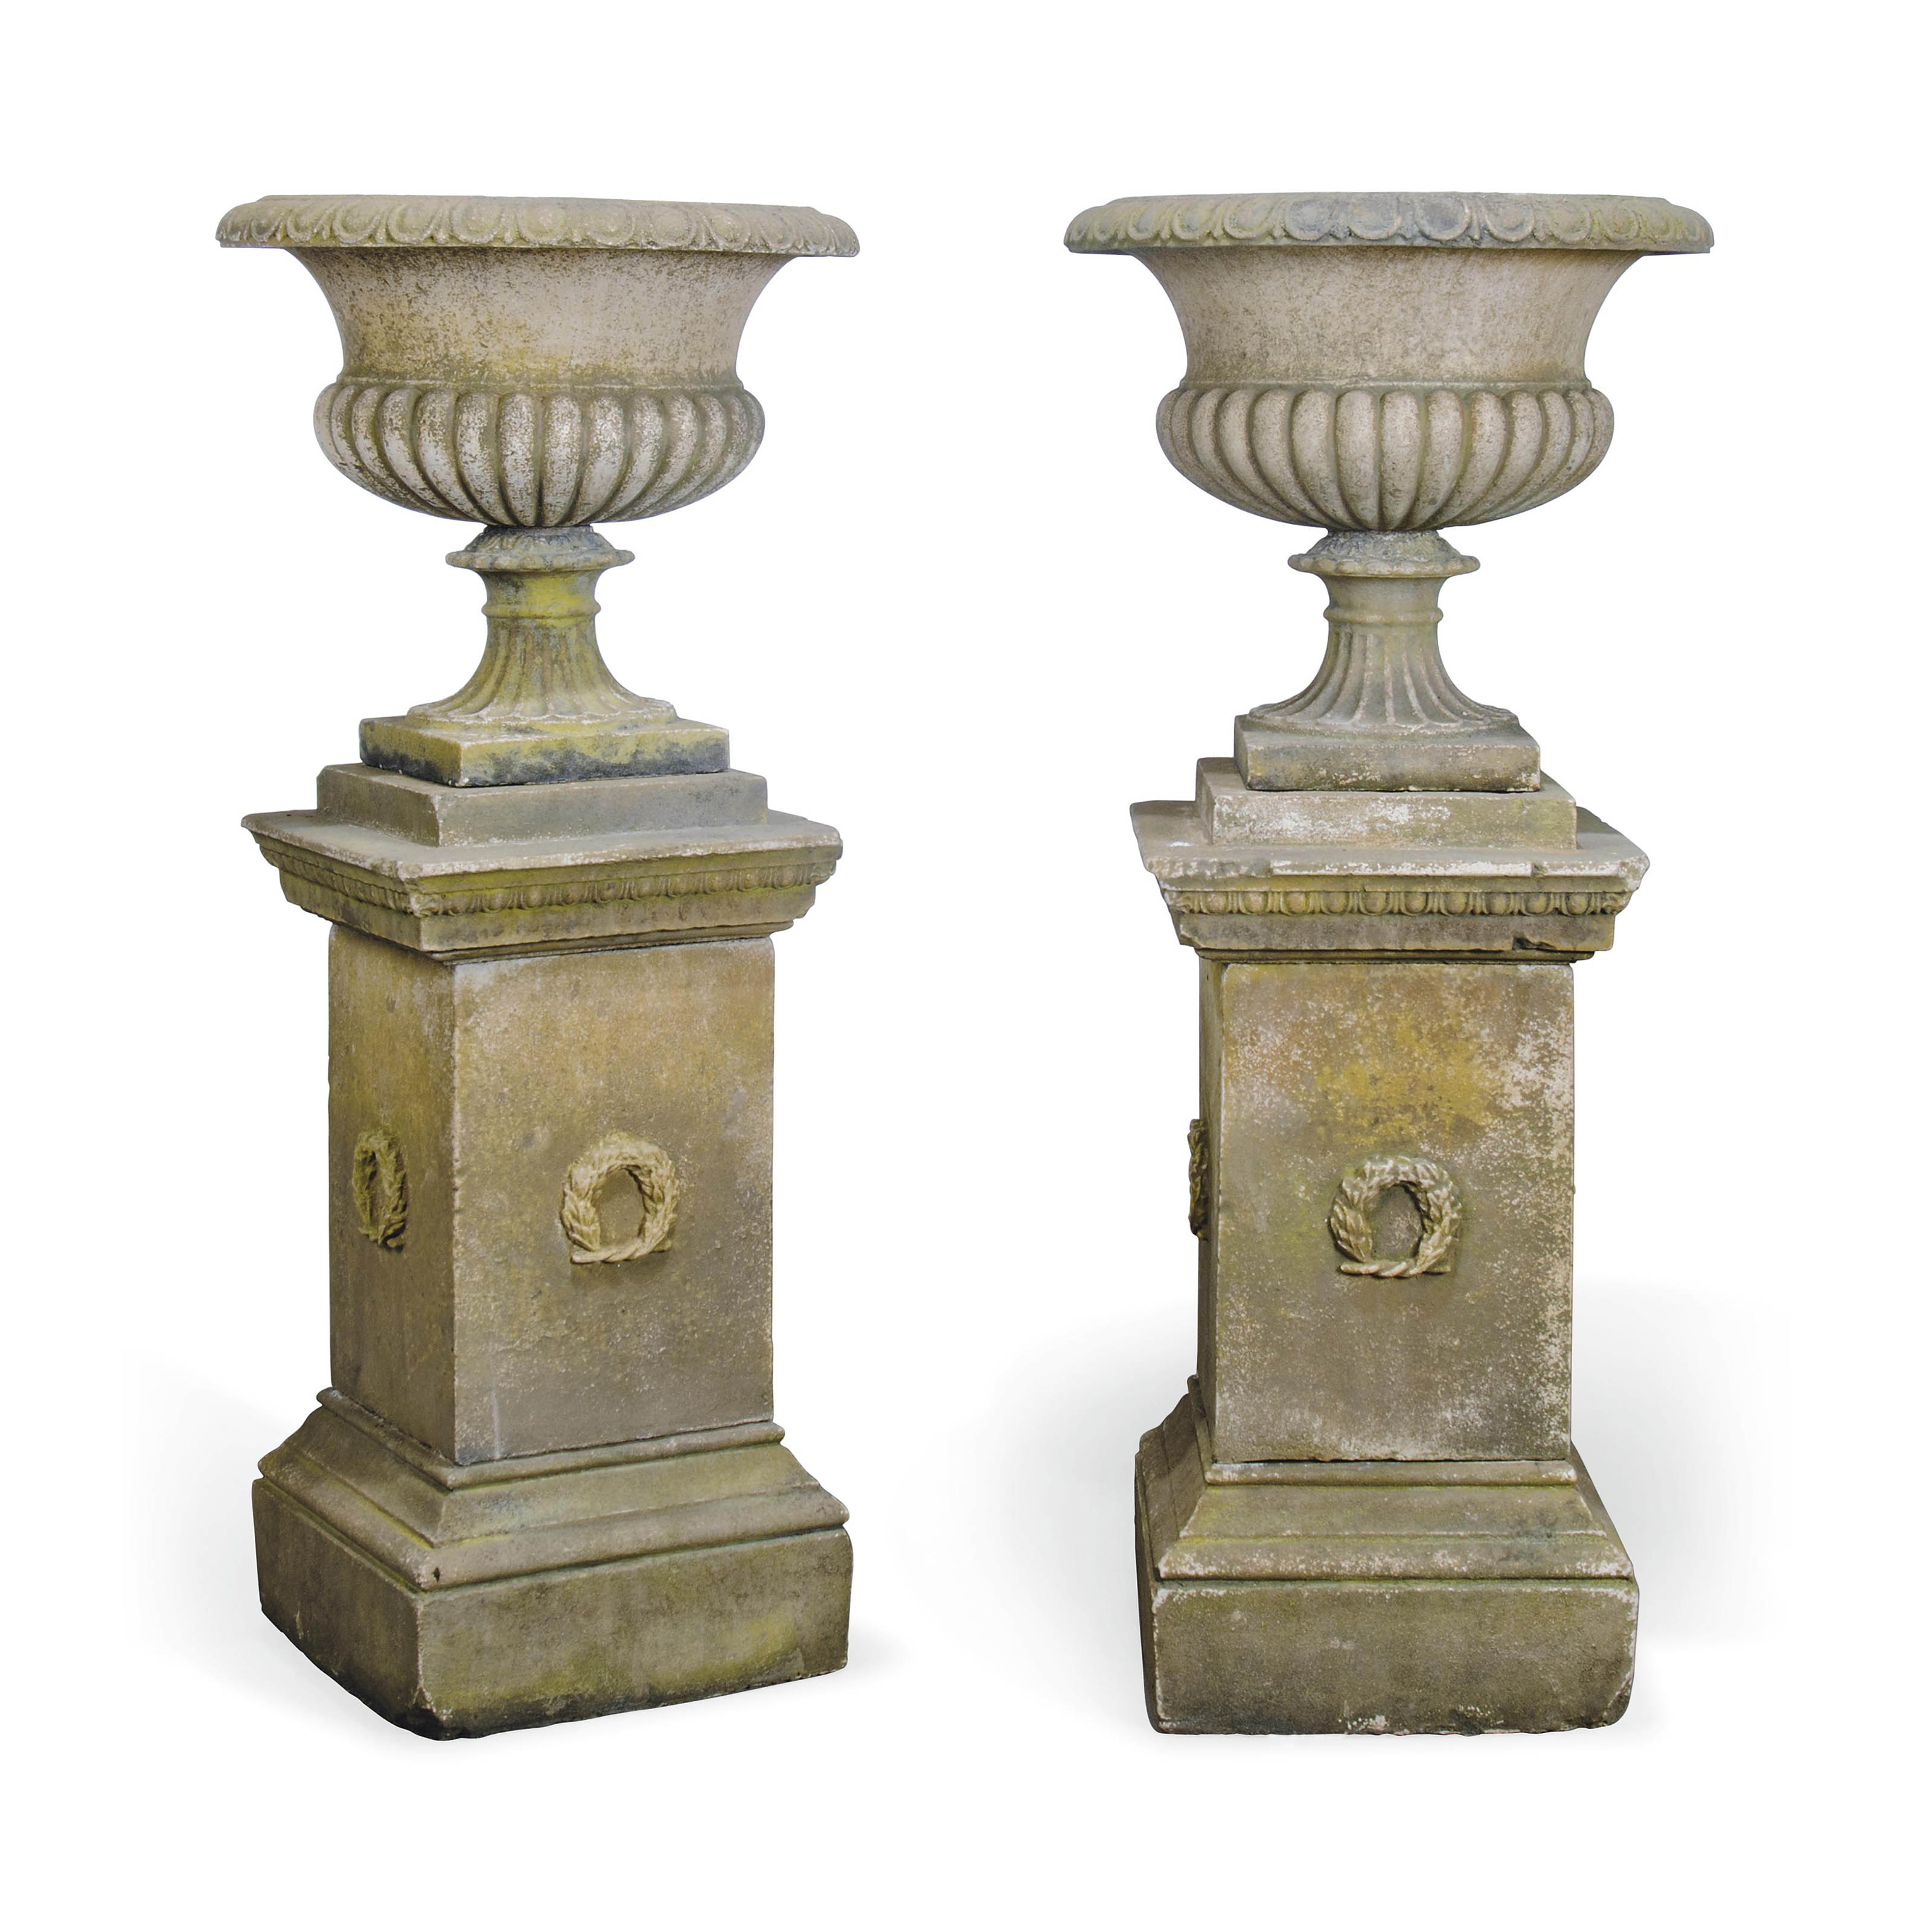 A PAIR OF COMPOSITE STONE GARDEN URNS ON PLINTHS OF RECENT